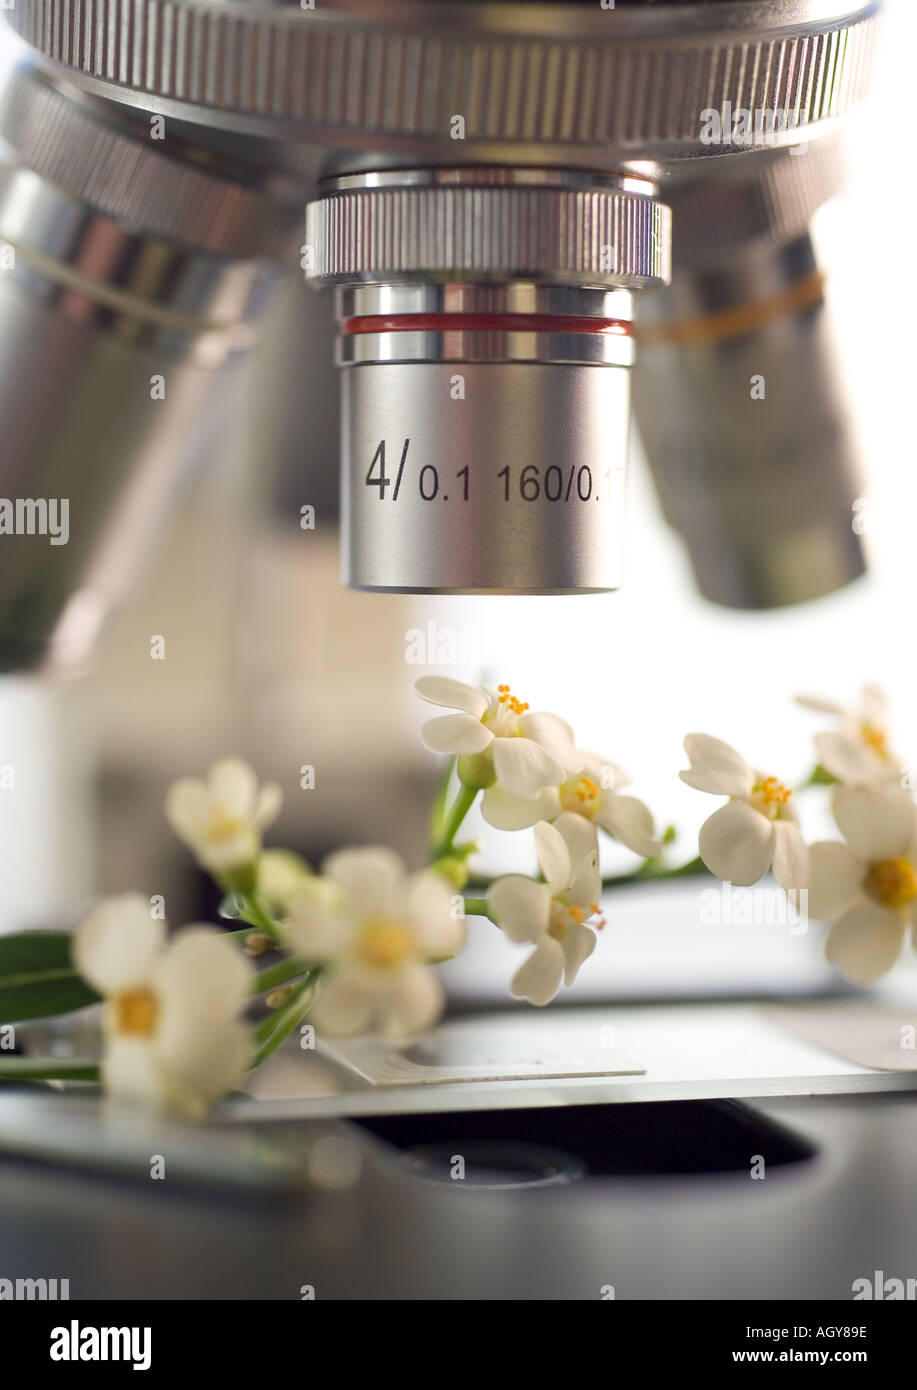 Closeup of flowers under a microscope - Stock Image